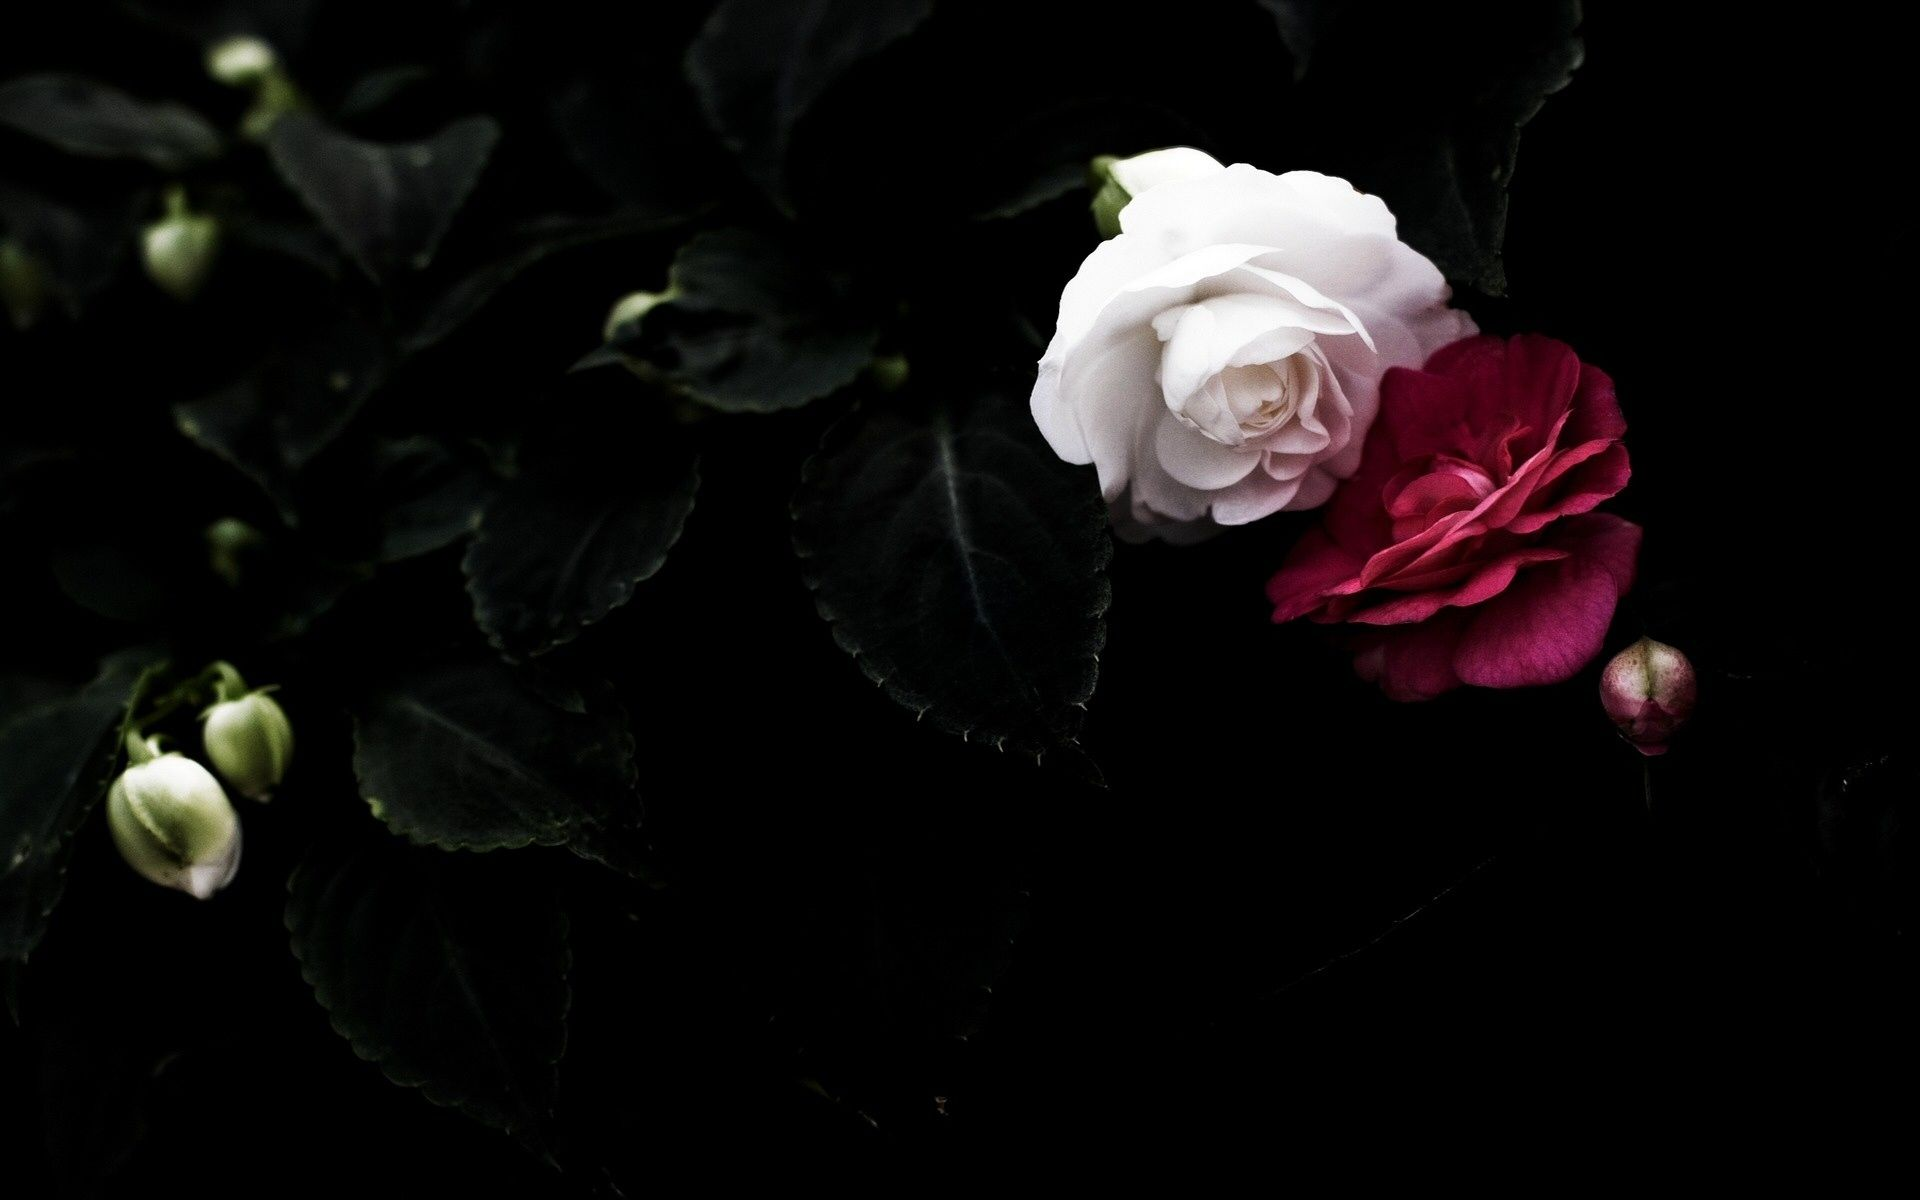 Black And White Rose Wallpapers - Wallpaper Cave